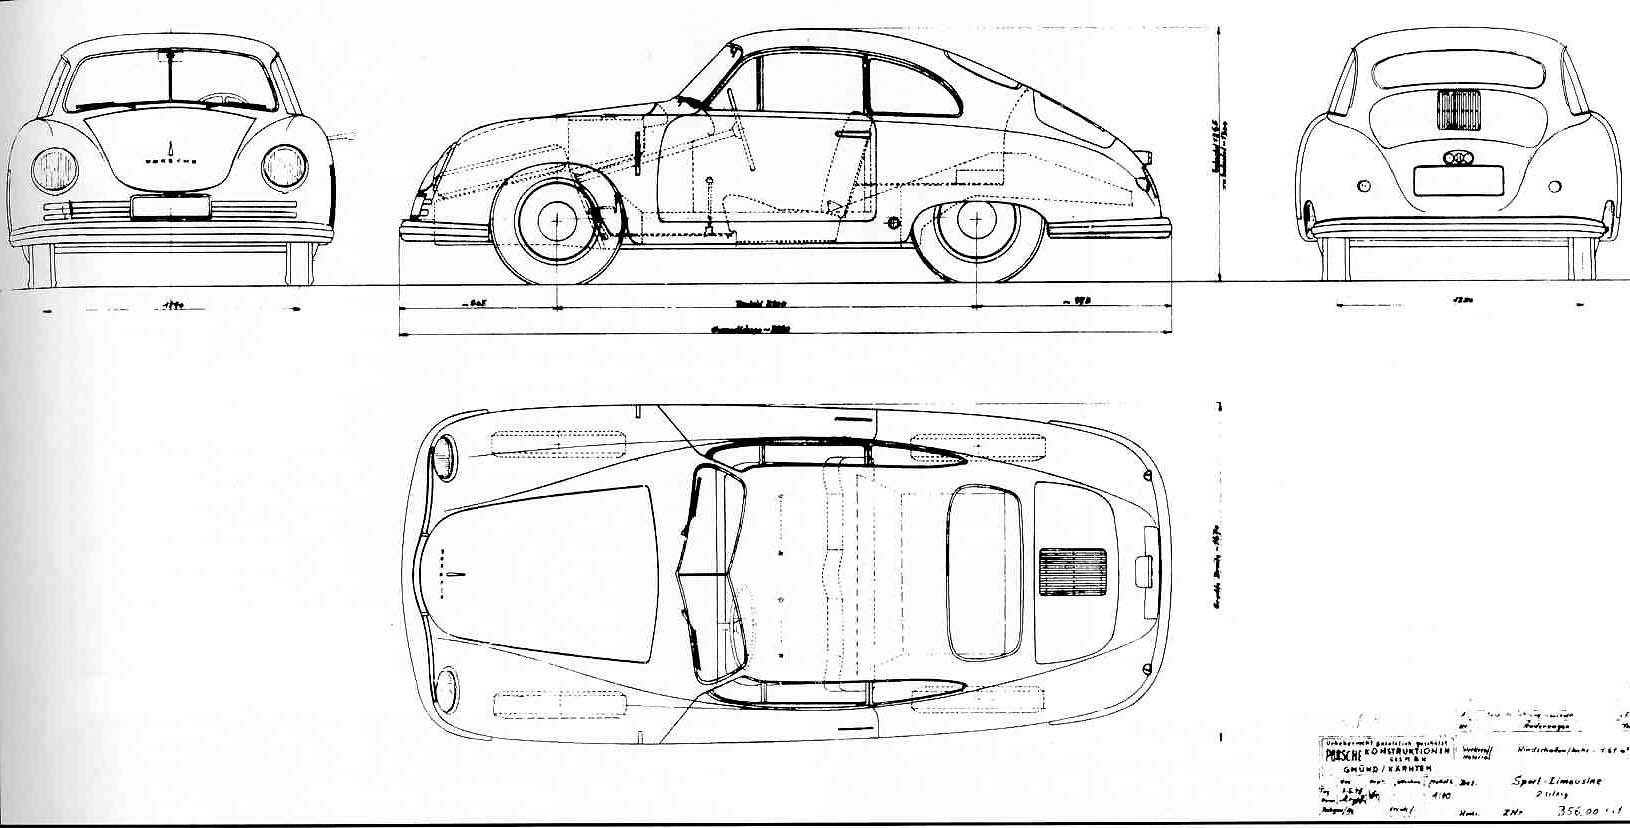 55 Vw Beetle Fuse Box Diagram. Diagram. Auto Wiring Diagram